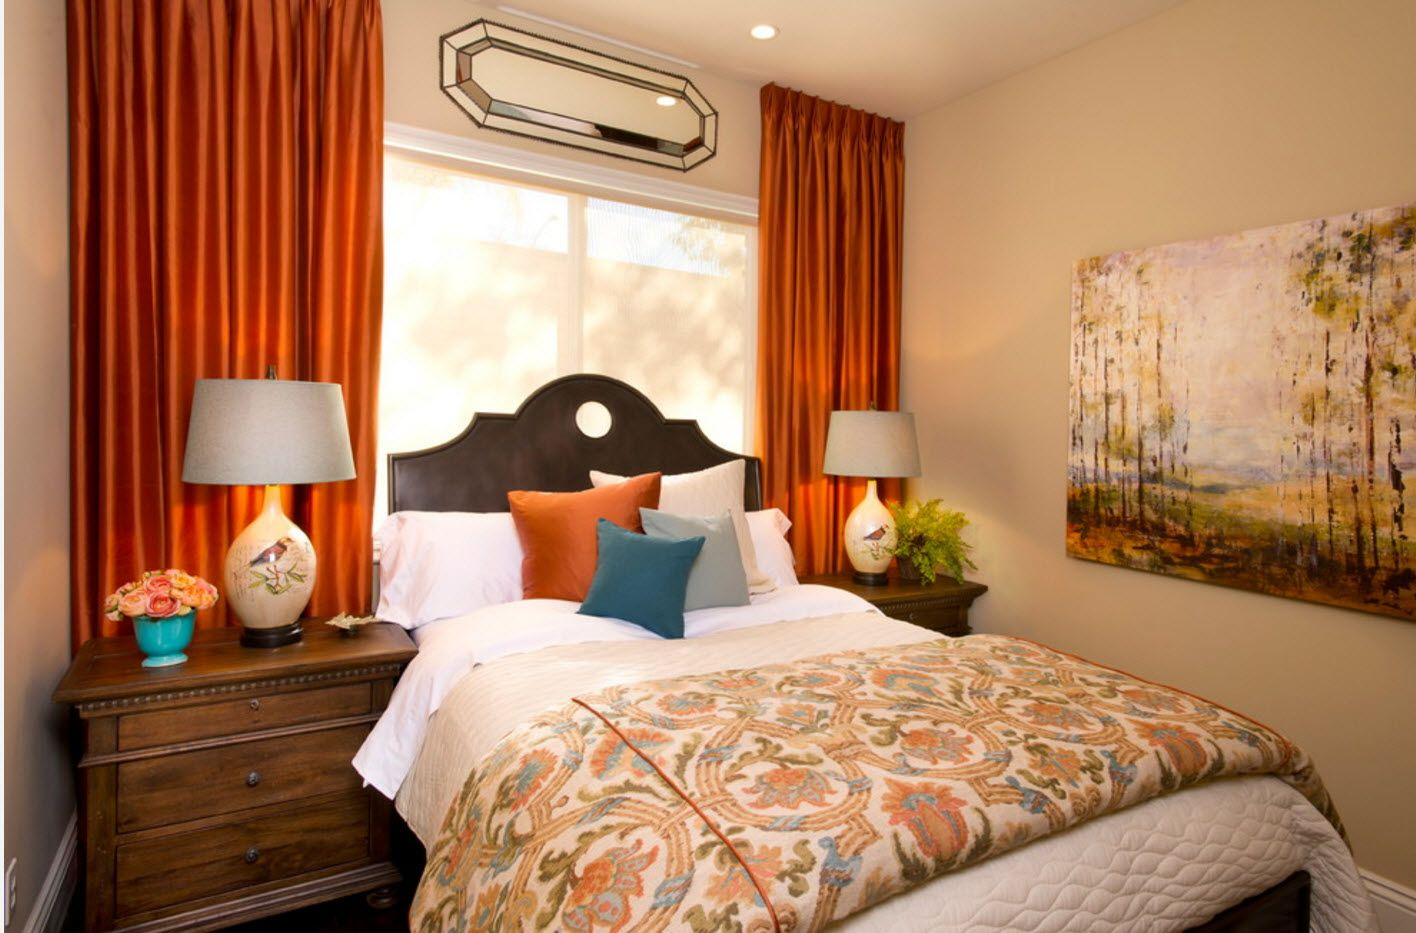 Colorful vintage decorated bedroom with orange dare draperies